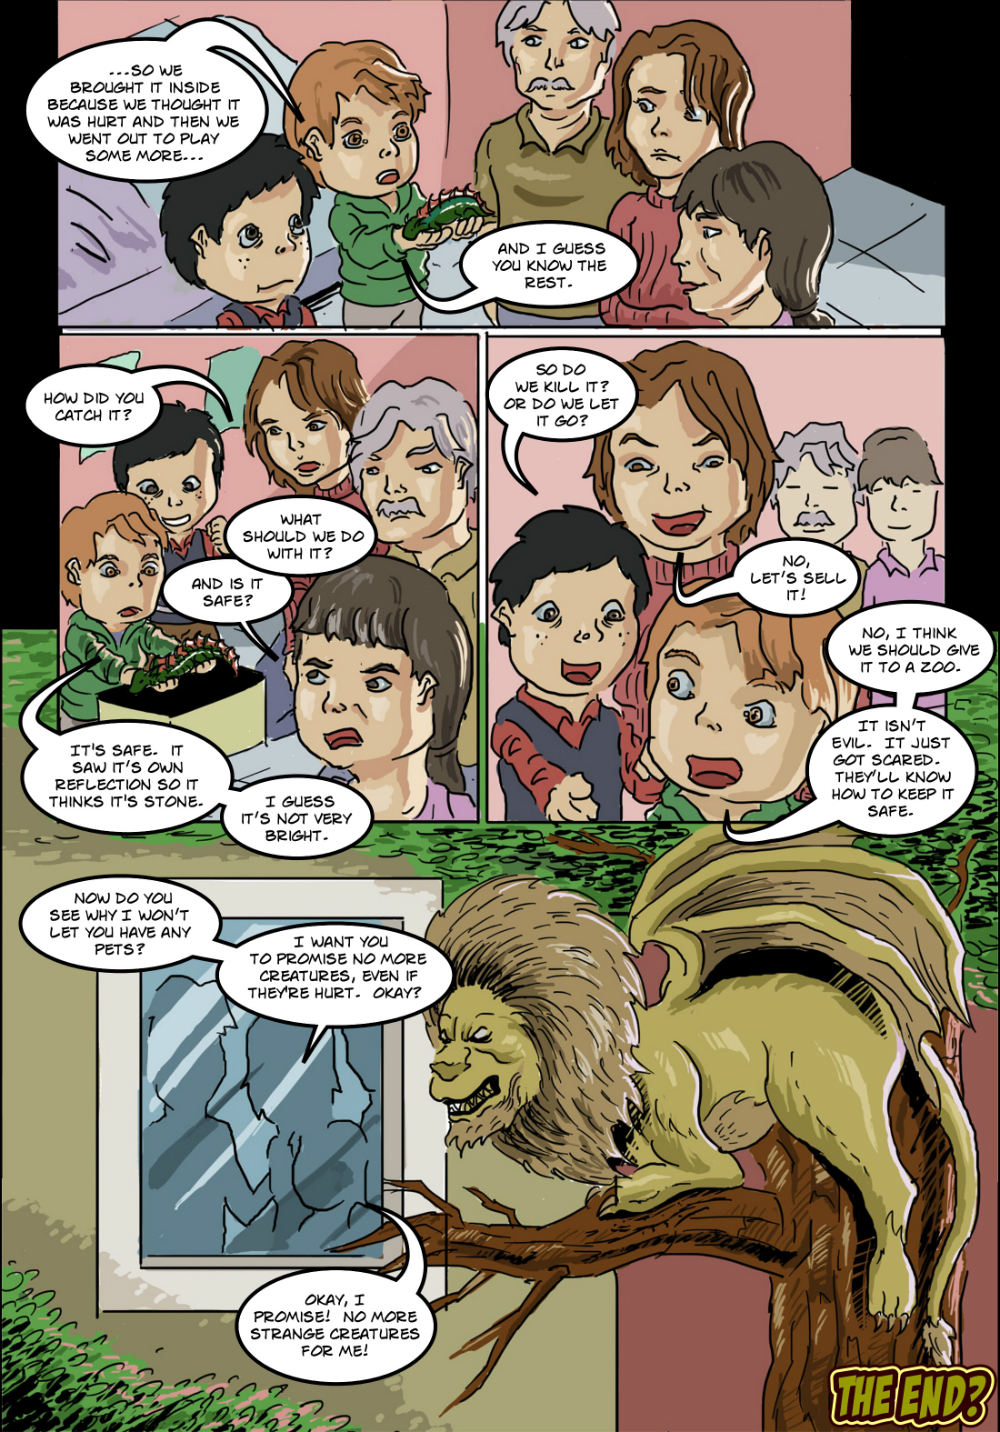 BASILISK IN THE HOUSE page 12 - story 18 in The Book of Lies